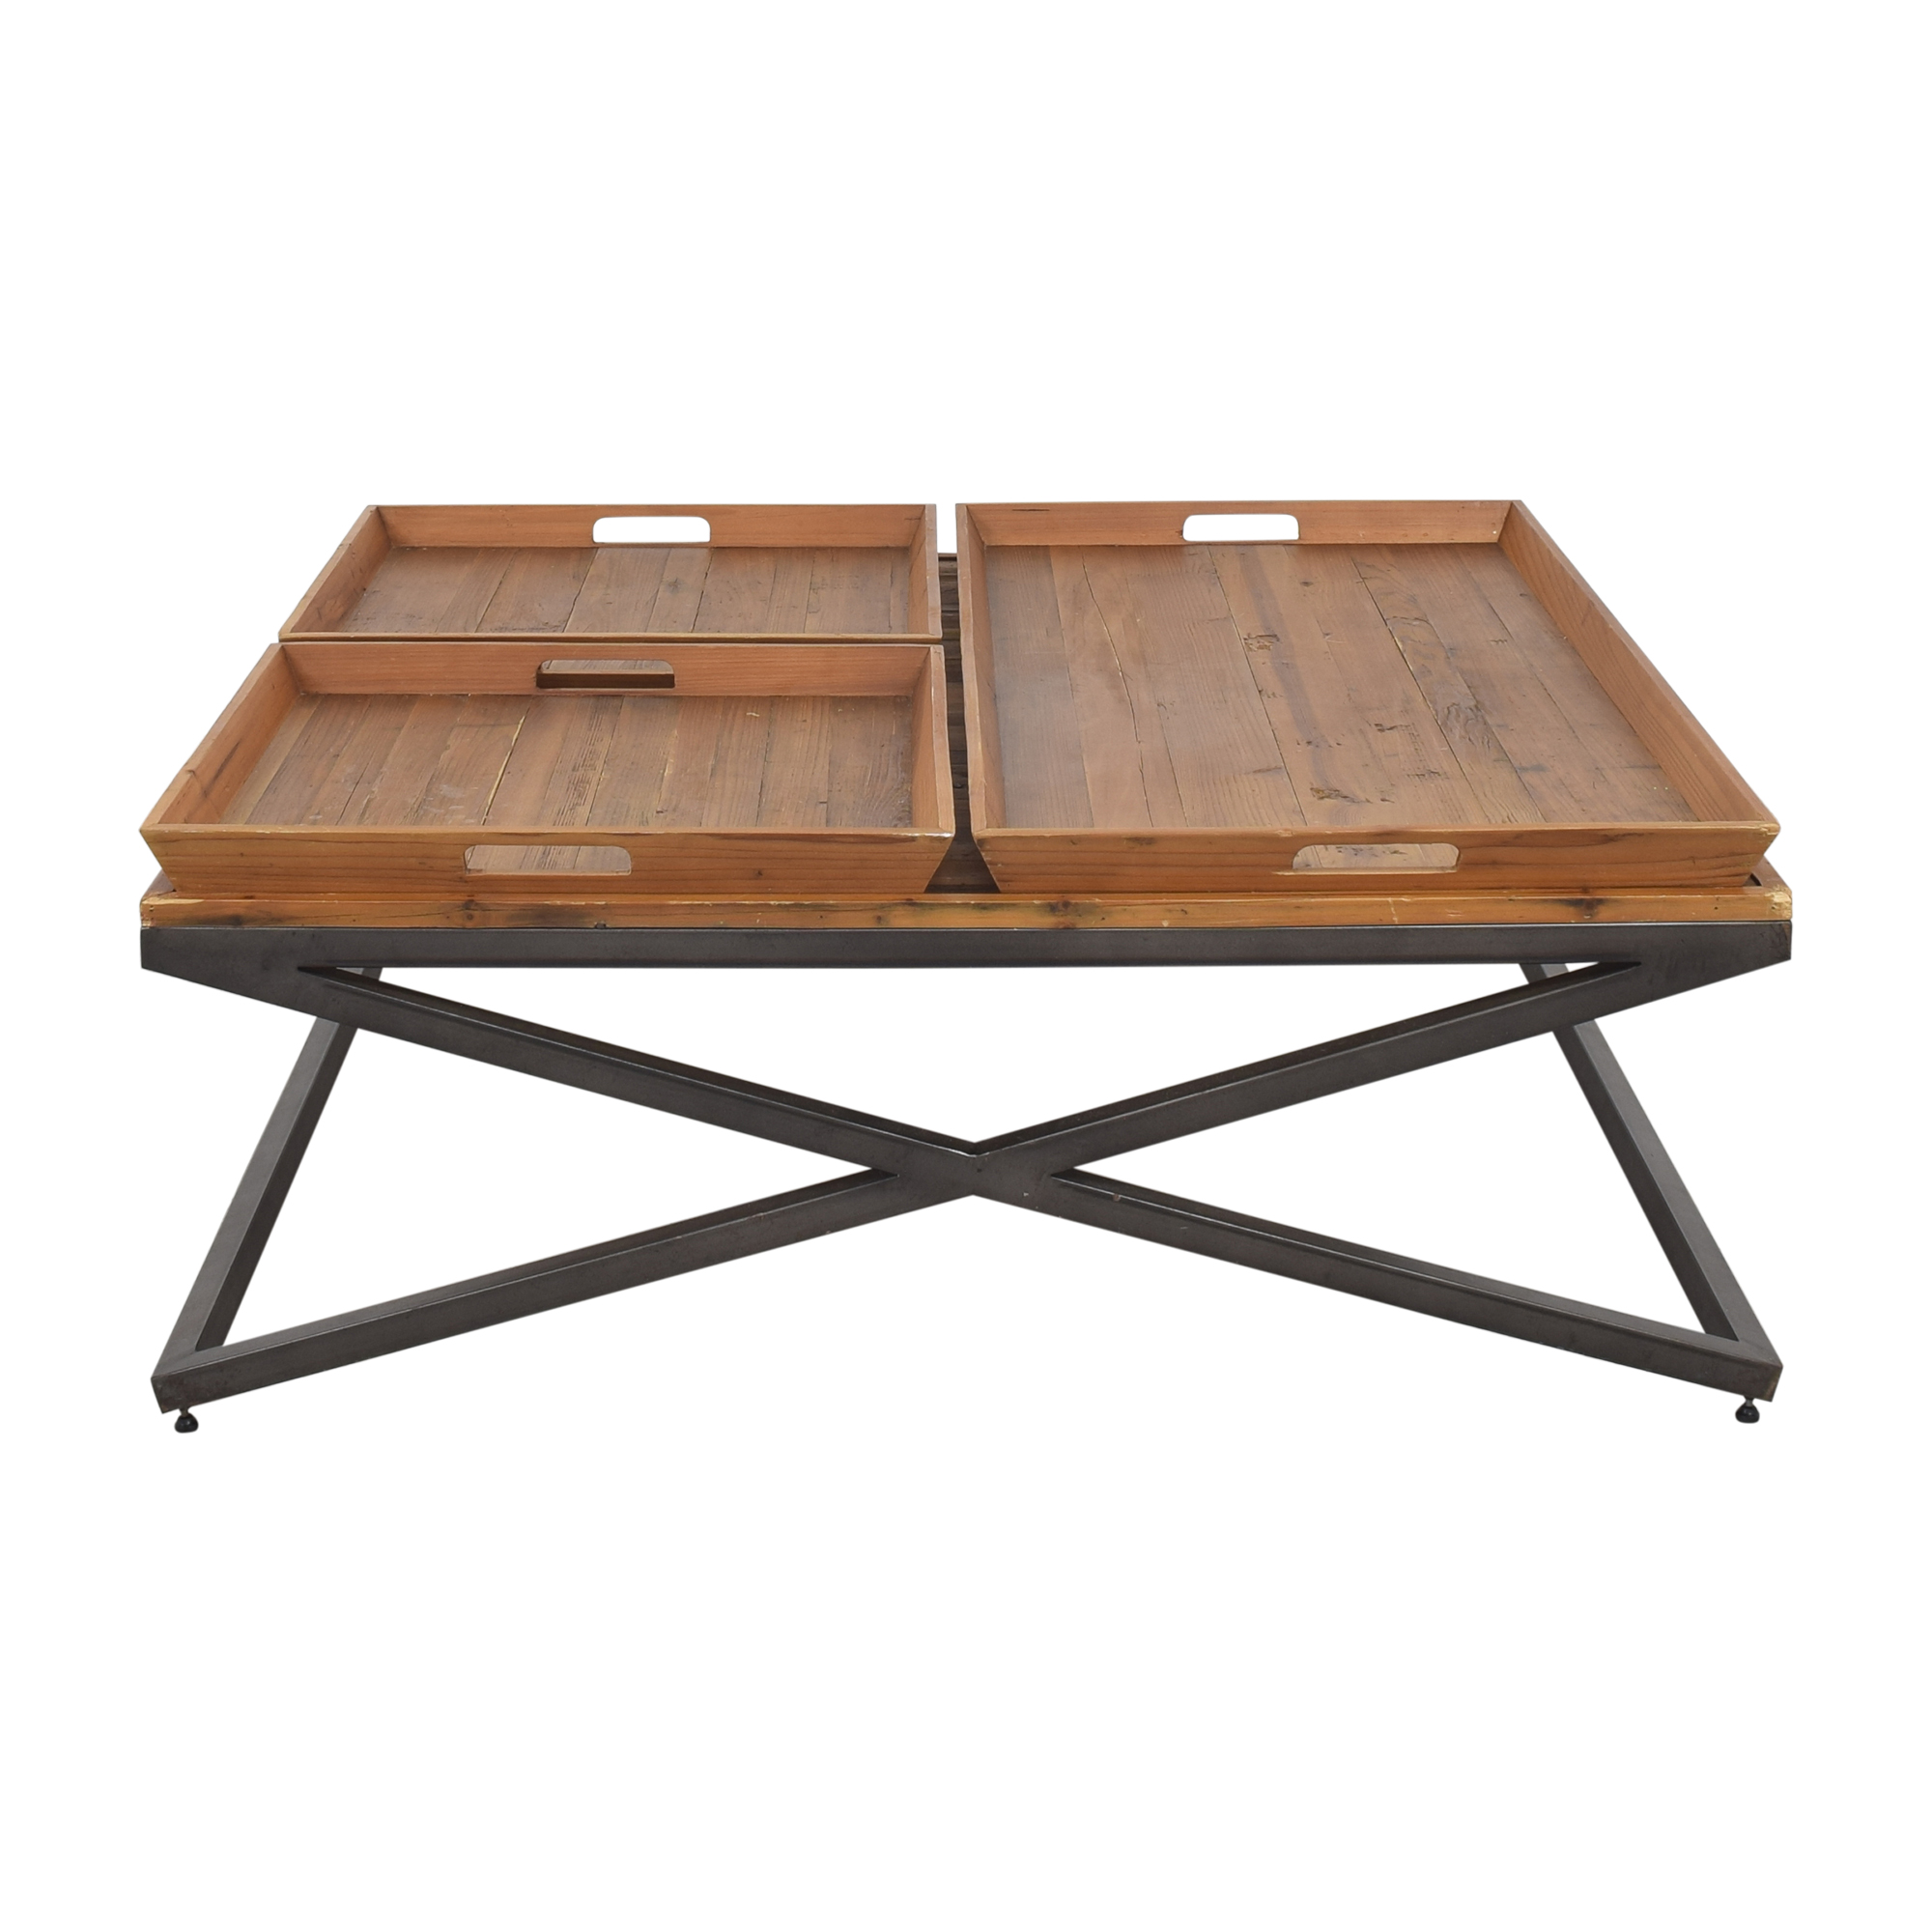 Four Hands Four Hands Jax Square Coffee Table on sale